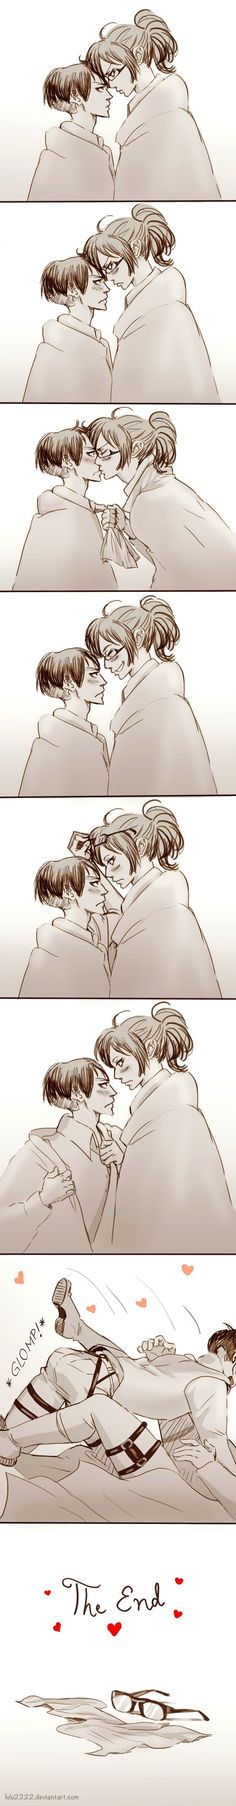 The End of an Argument by Lulu2222.deviantart.com on @deviantART HANJI ZOE X LEVI LEVIHAN ATTACK ON TITAN